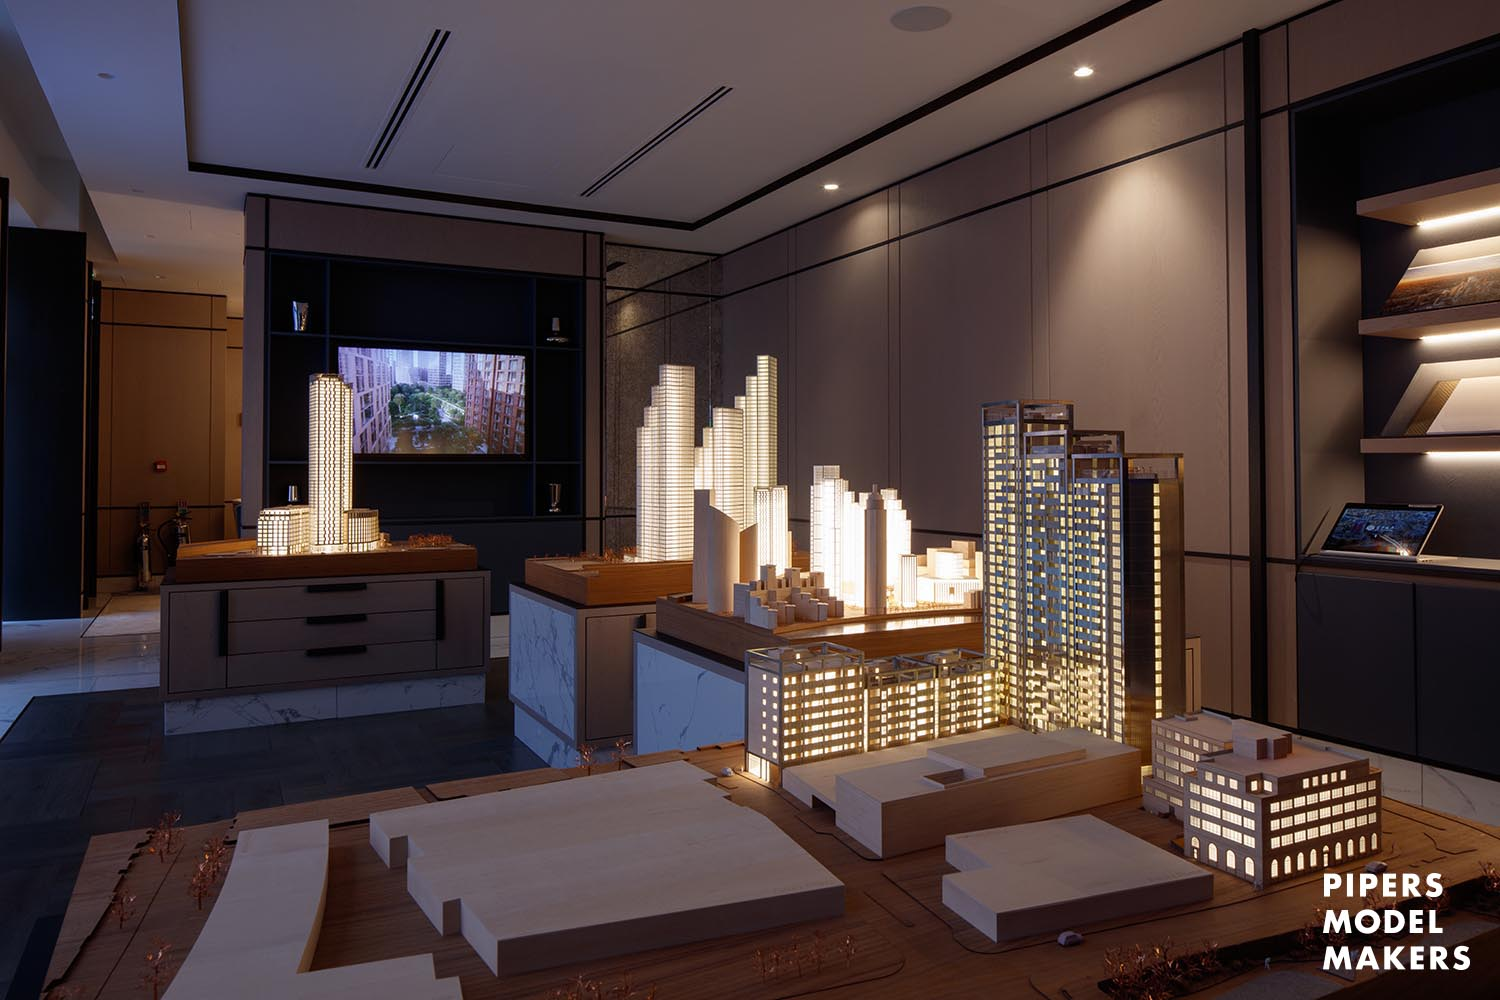 http://Queens%20Square%20R&F%20Properties%20Architectural%20Model